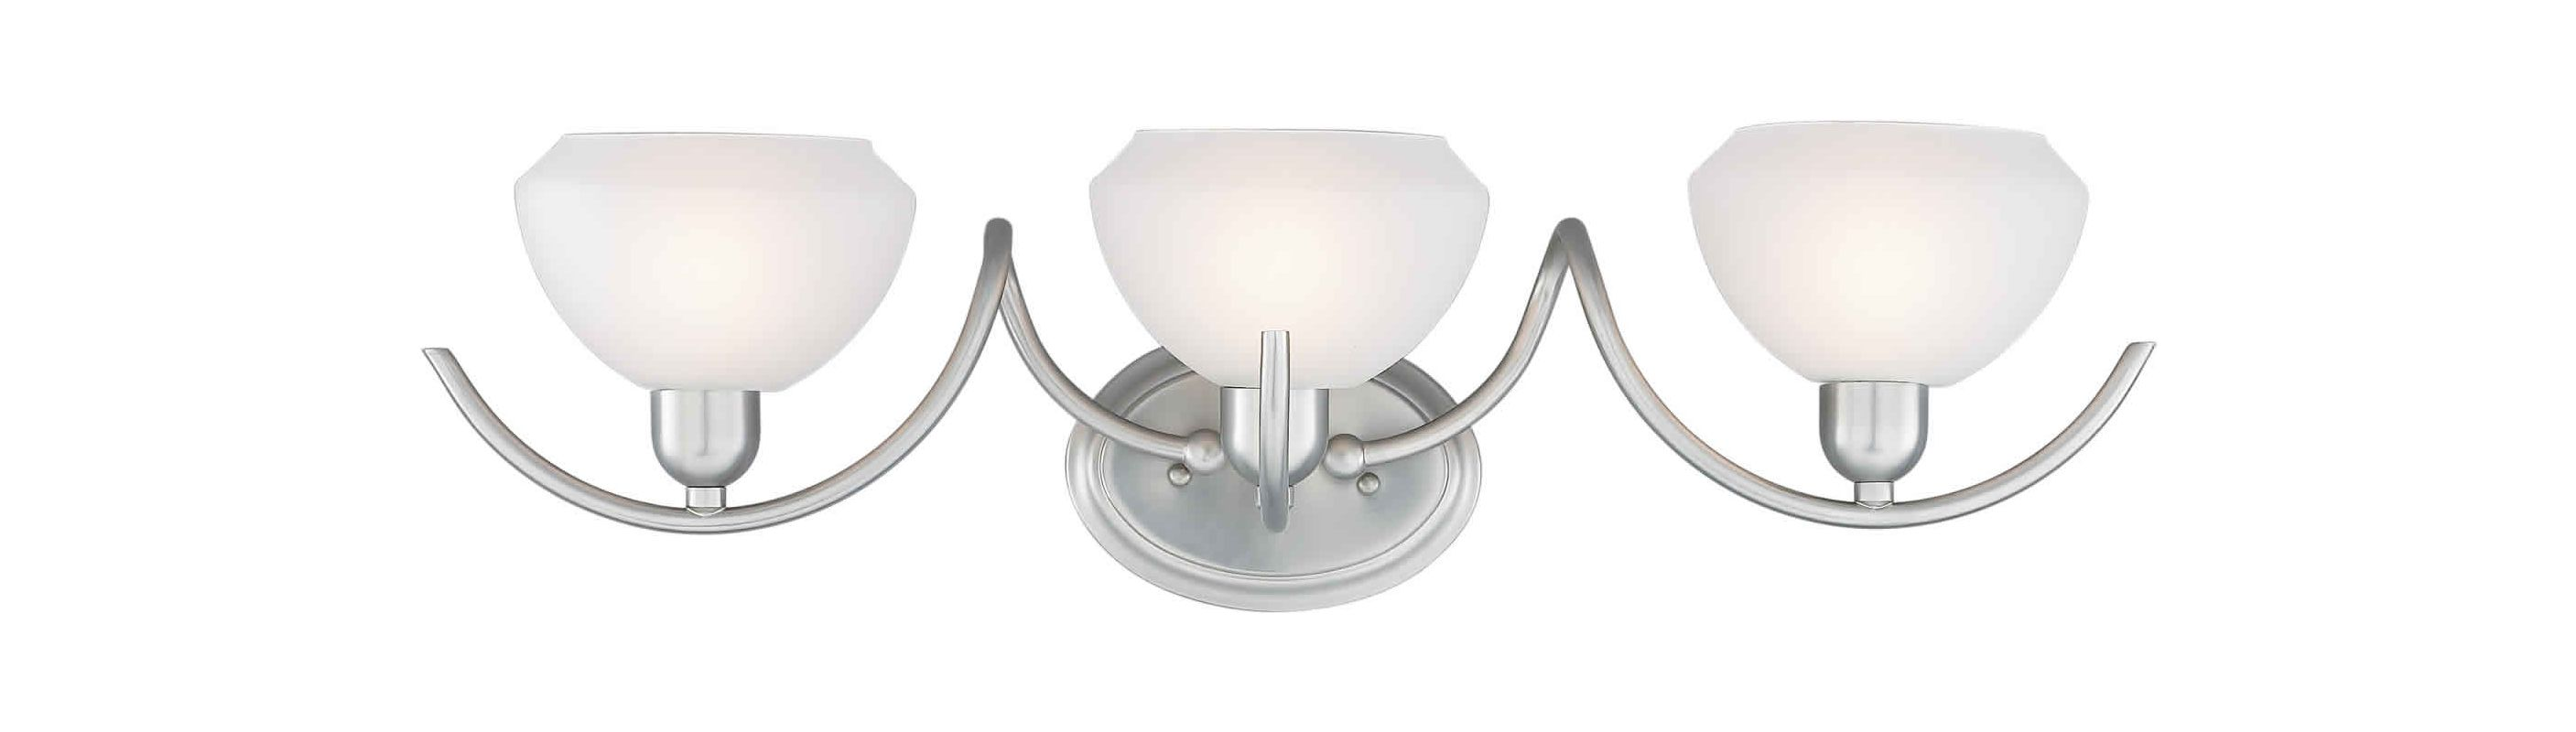 "Forte Lighting 5046-03 3 Light 23.75"" Wide Bathroom Fixture with"